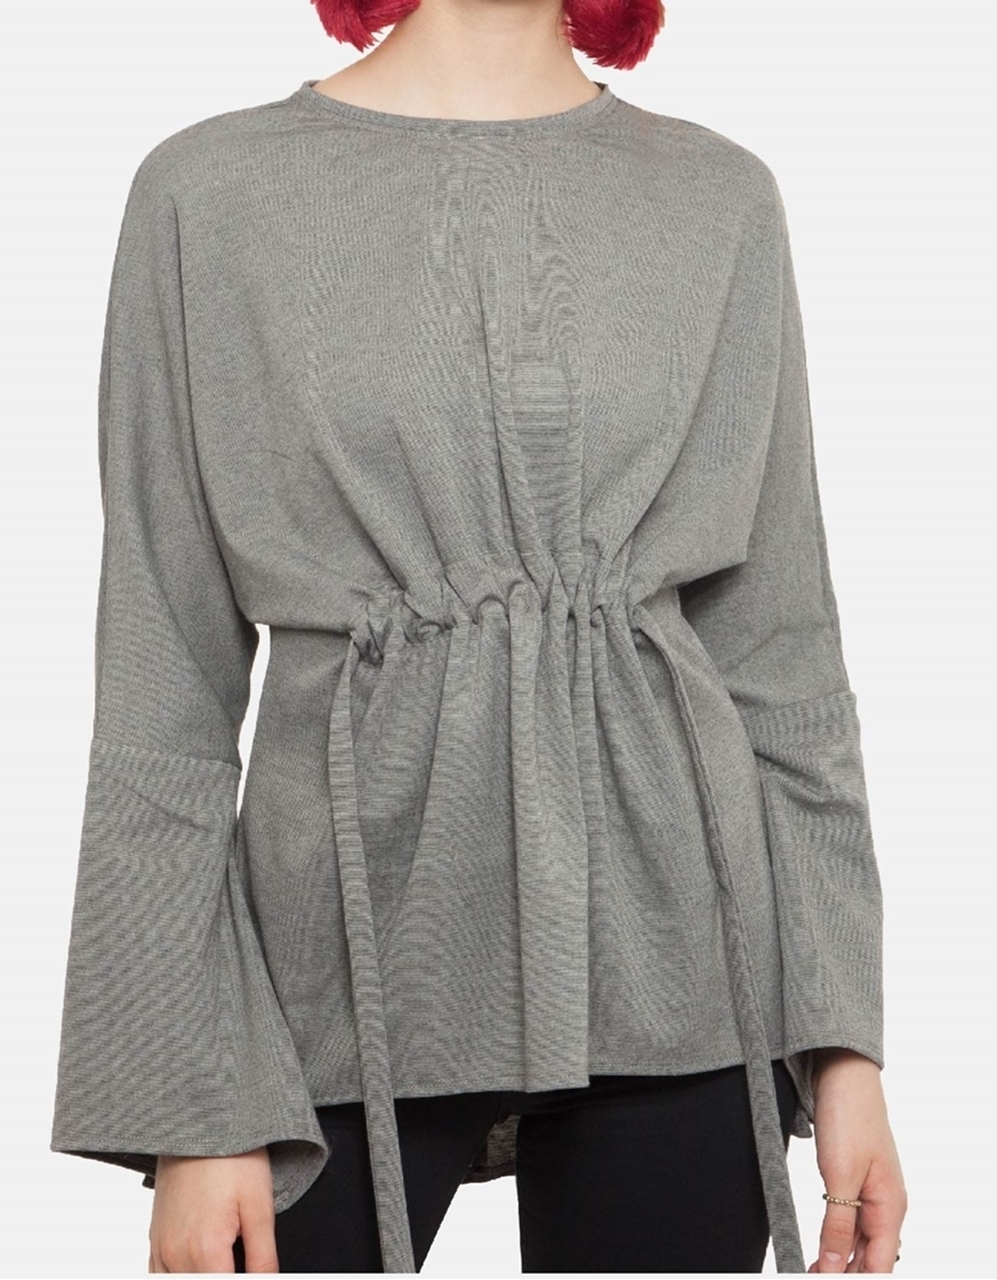 Picture of Delphy Blouse in Light grey